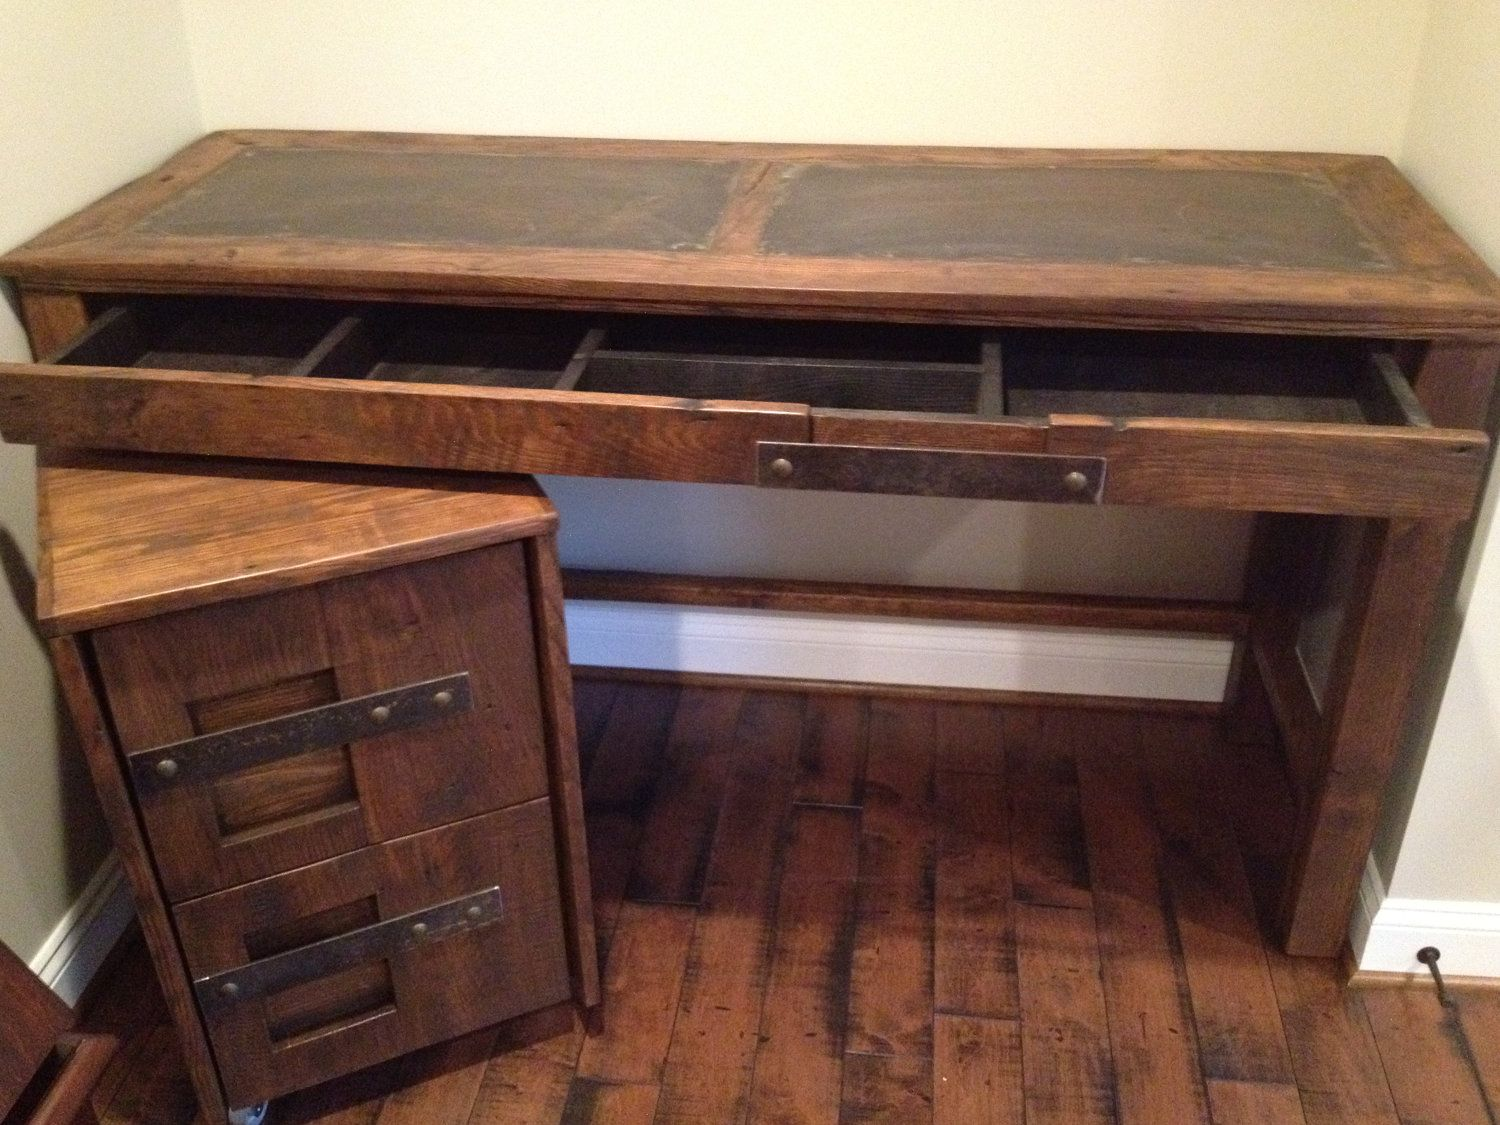 Steel Top Desk And File Cabinet By Toddmanring On Etsy